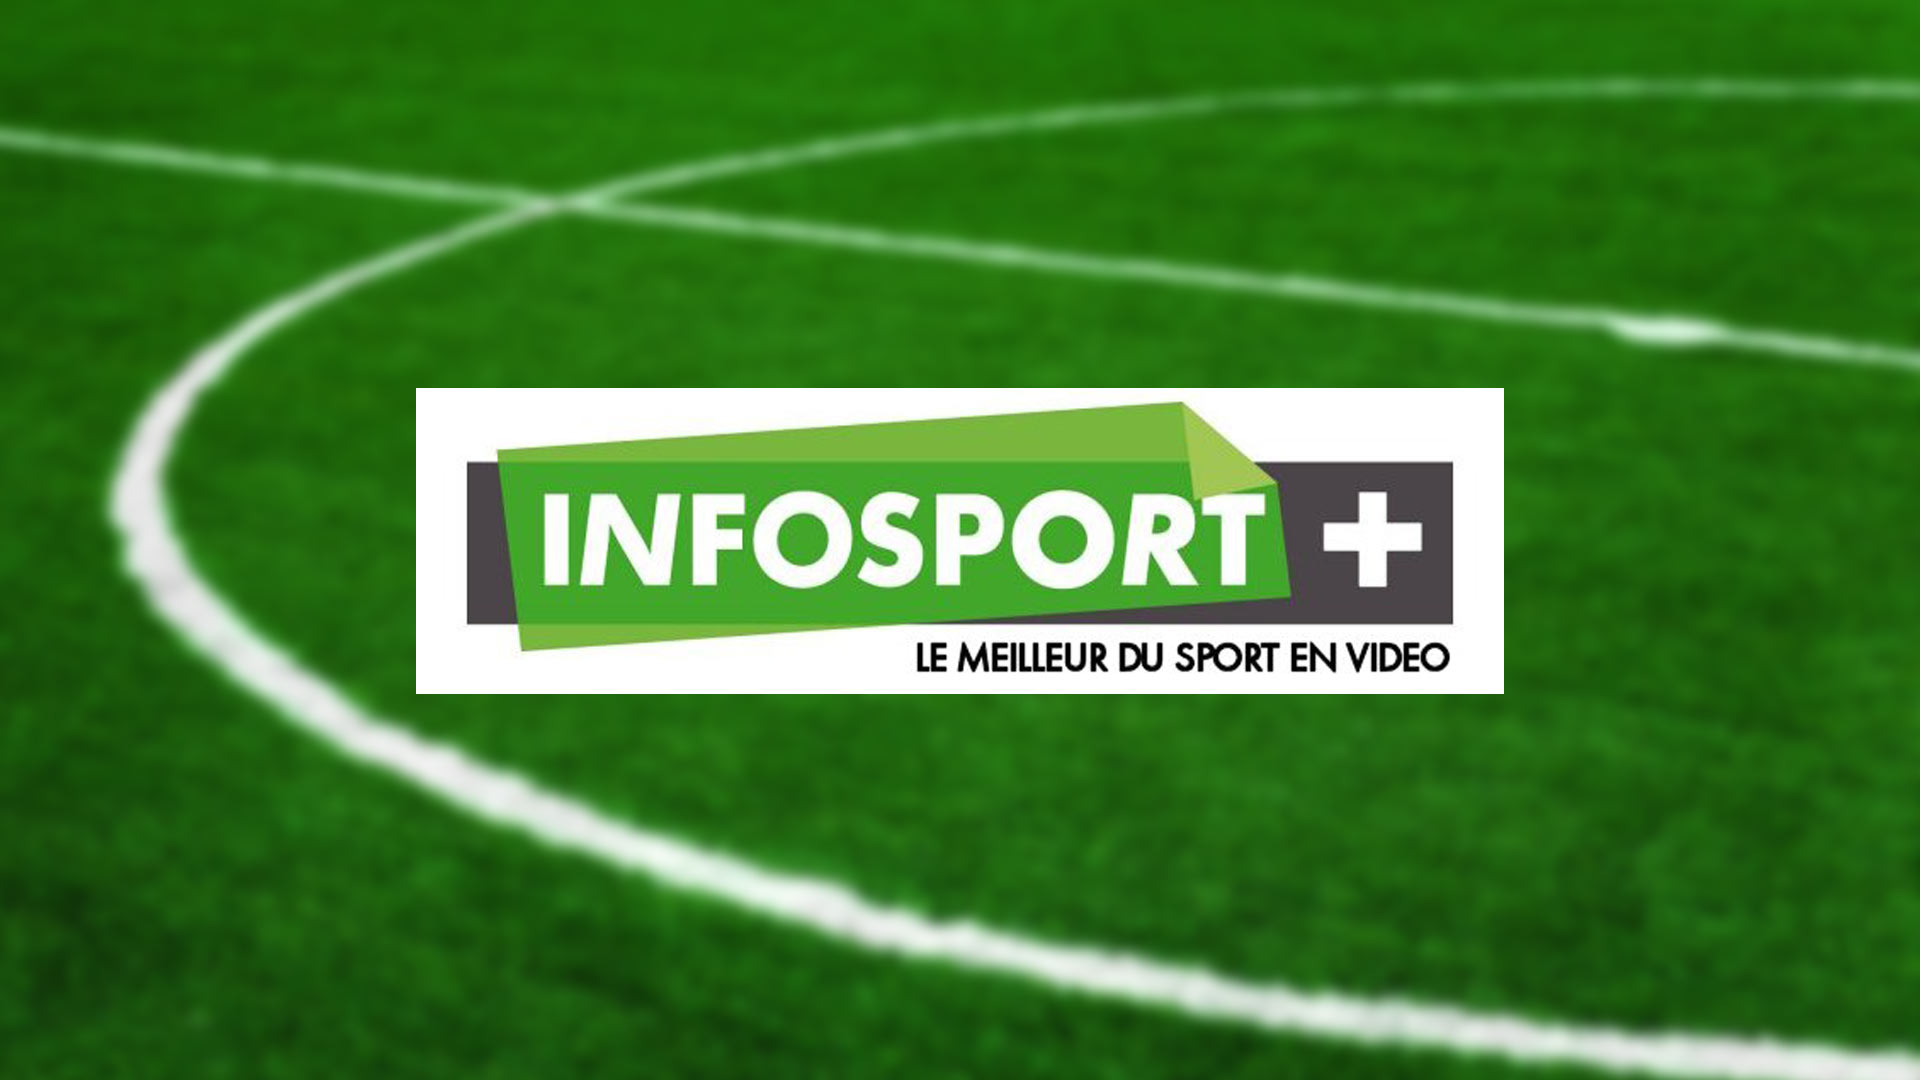 regarder infosport en direct live 100 gratuit tv direct. Black Bedroom Furniture Sets. Home Design Ideas